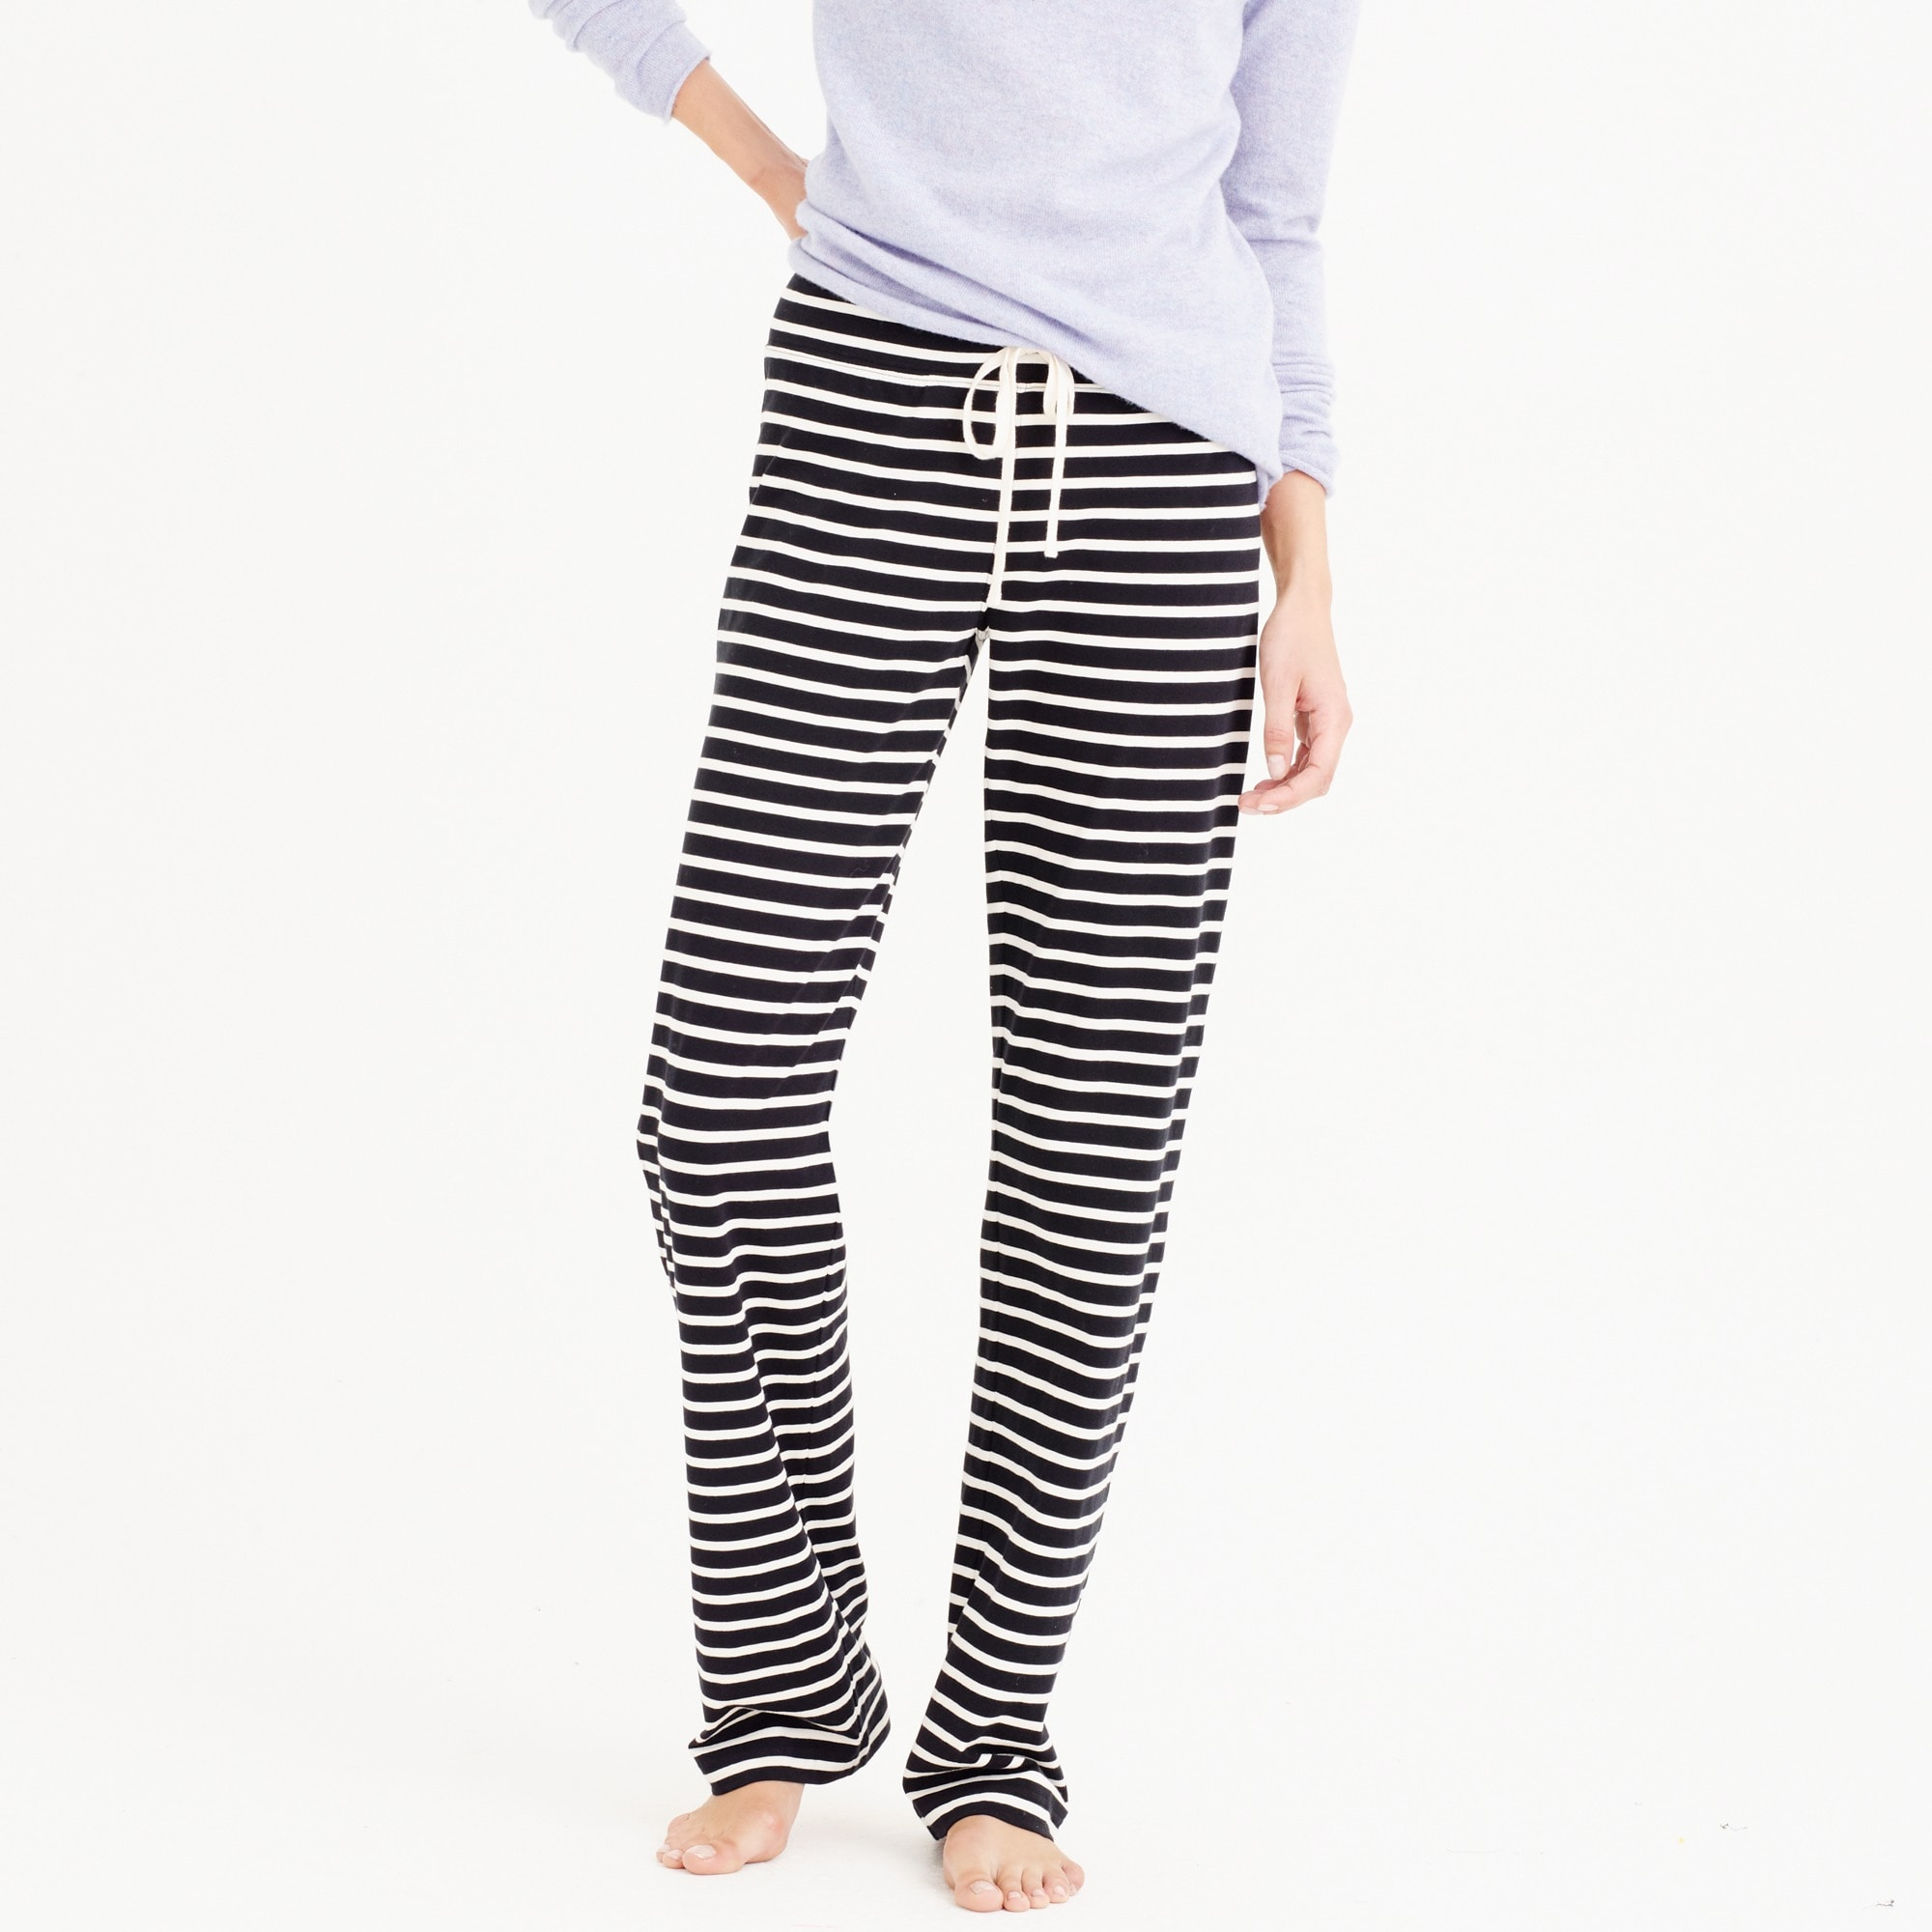 Image 2 for Petite dreamy cotton pant in stripe